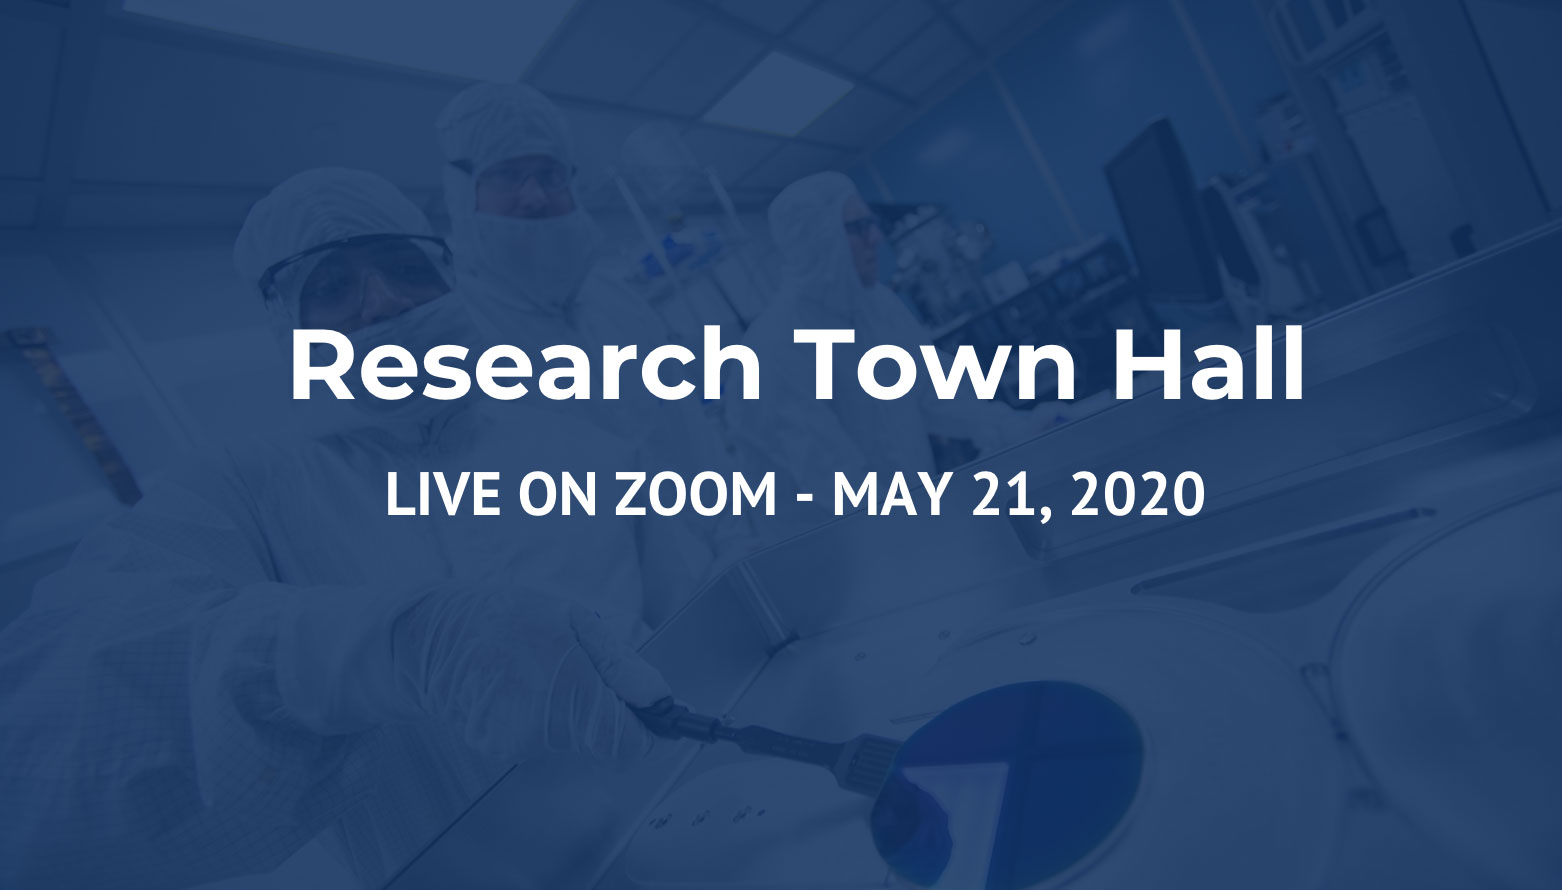 Research Town Hall live image